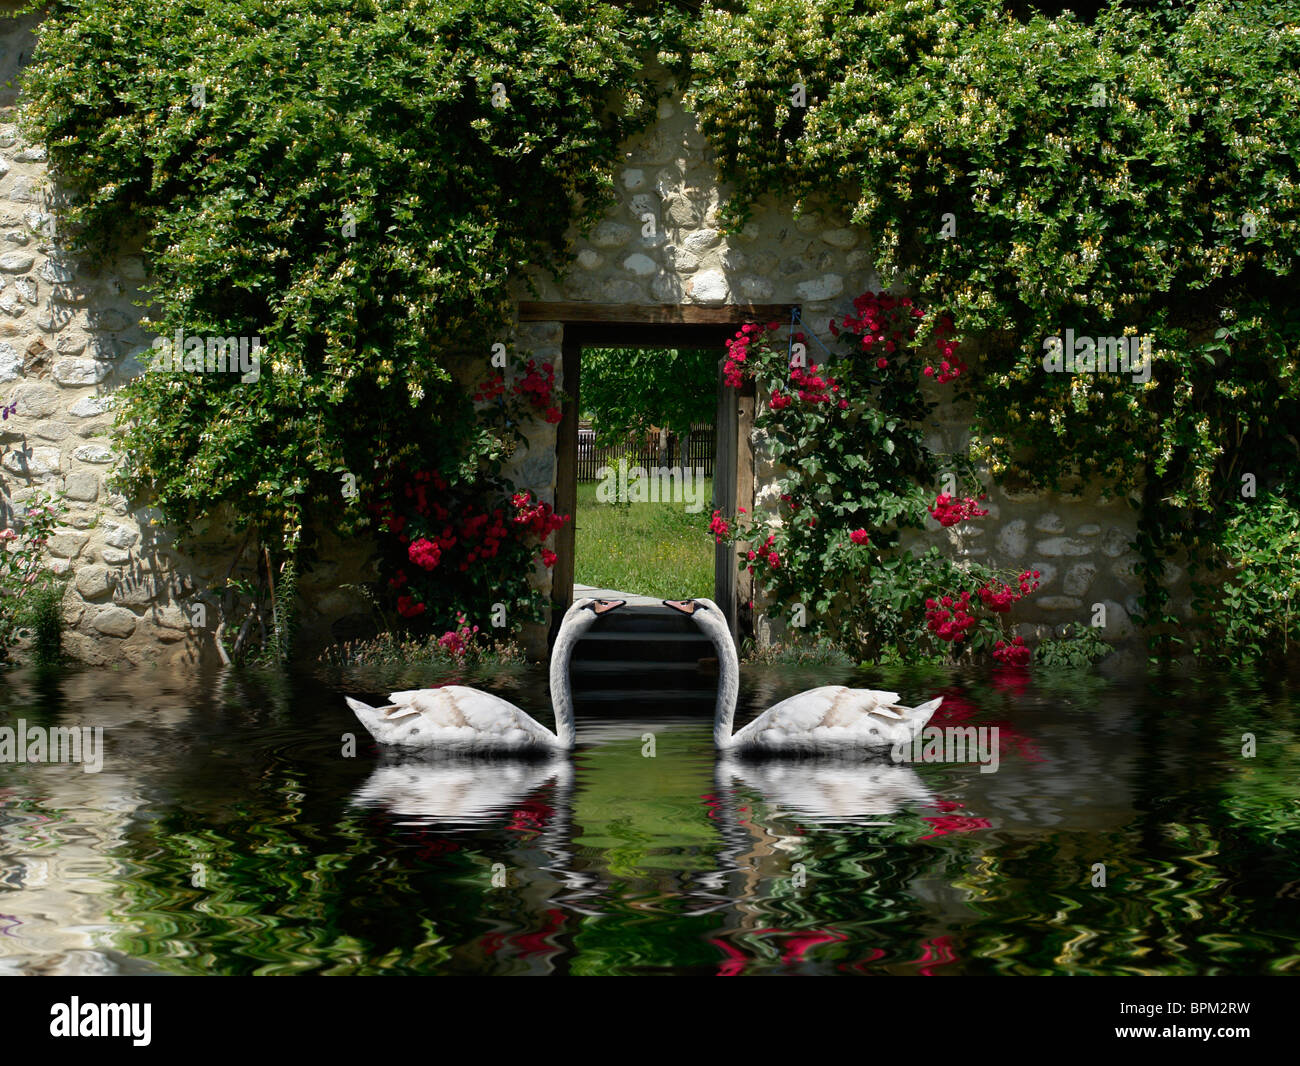 Beautiful scenery with loving swans in Venice Italy guarding a secret entrance to a heavenly garden Stock Photo